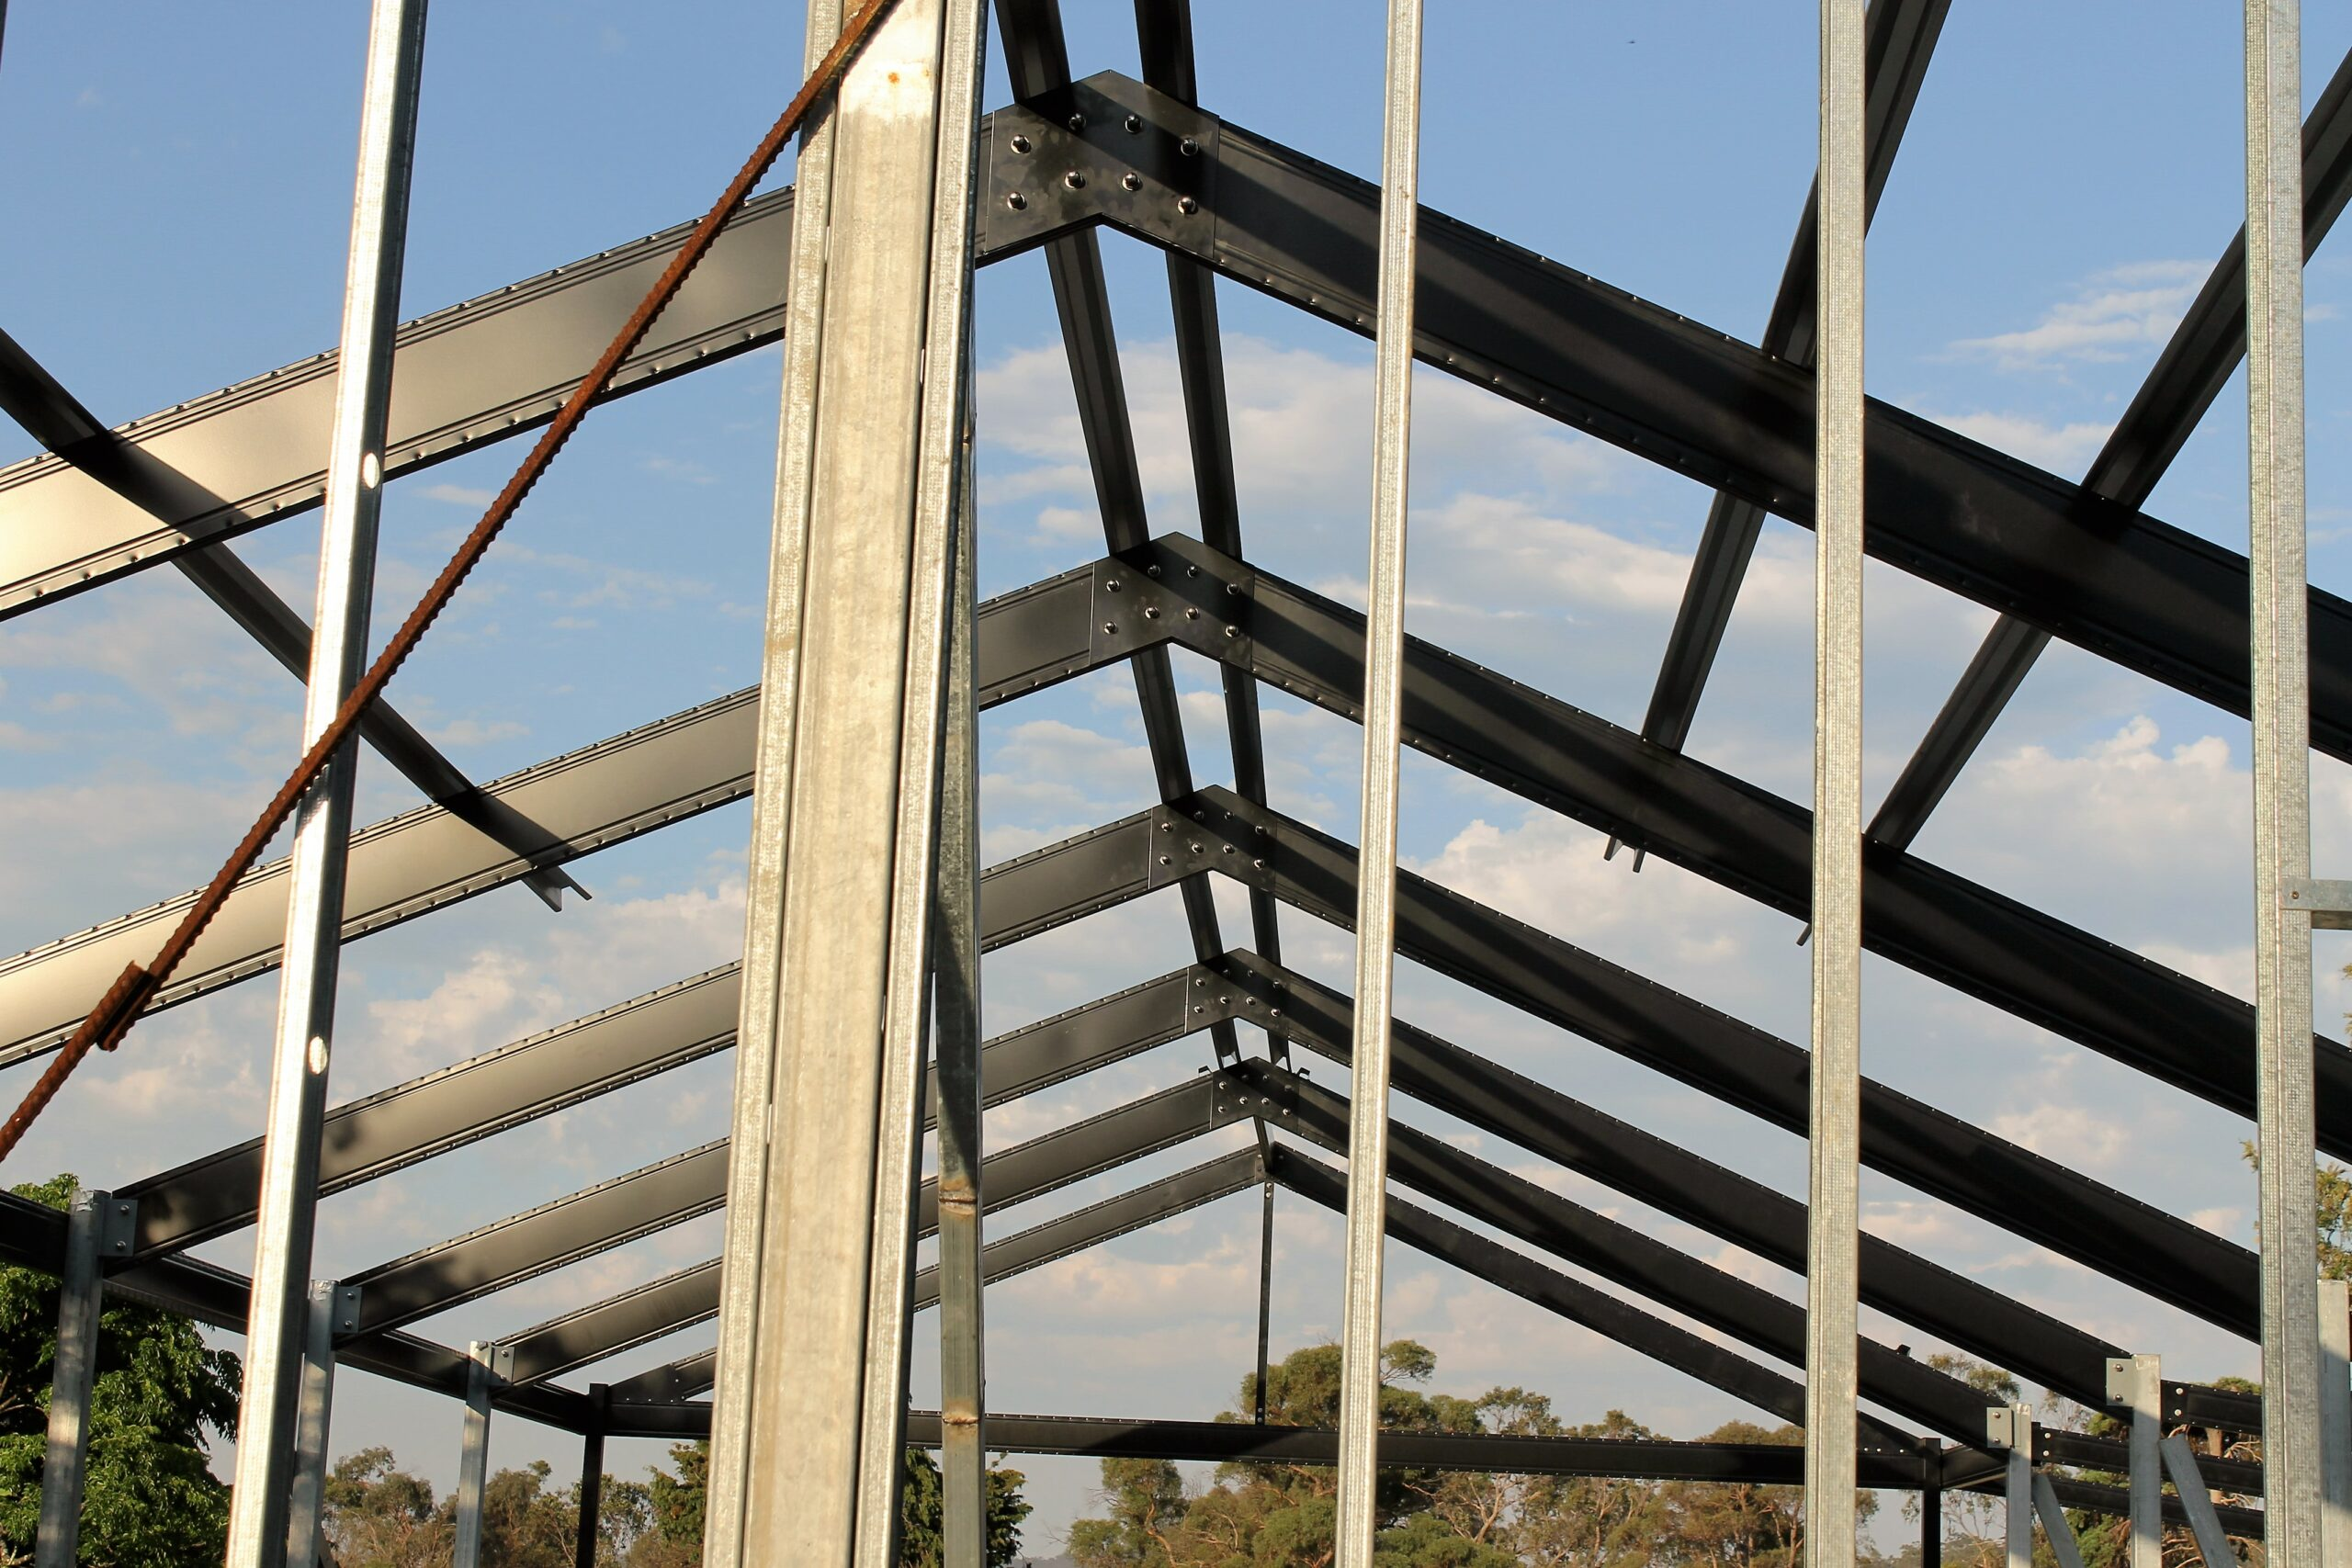 Powder coated Boxspan pitched roof Frame under construction